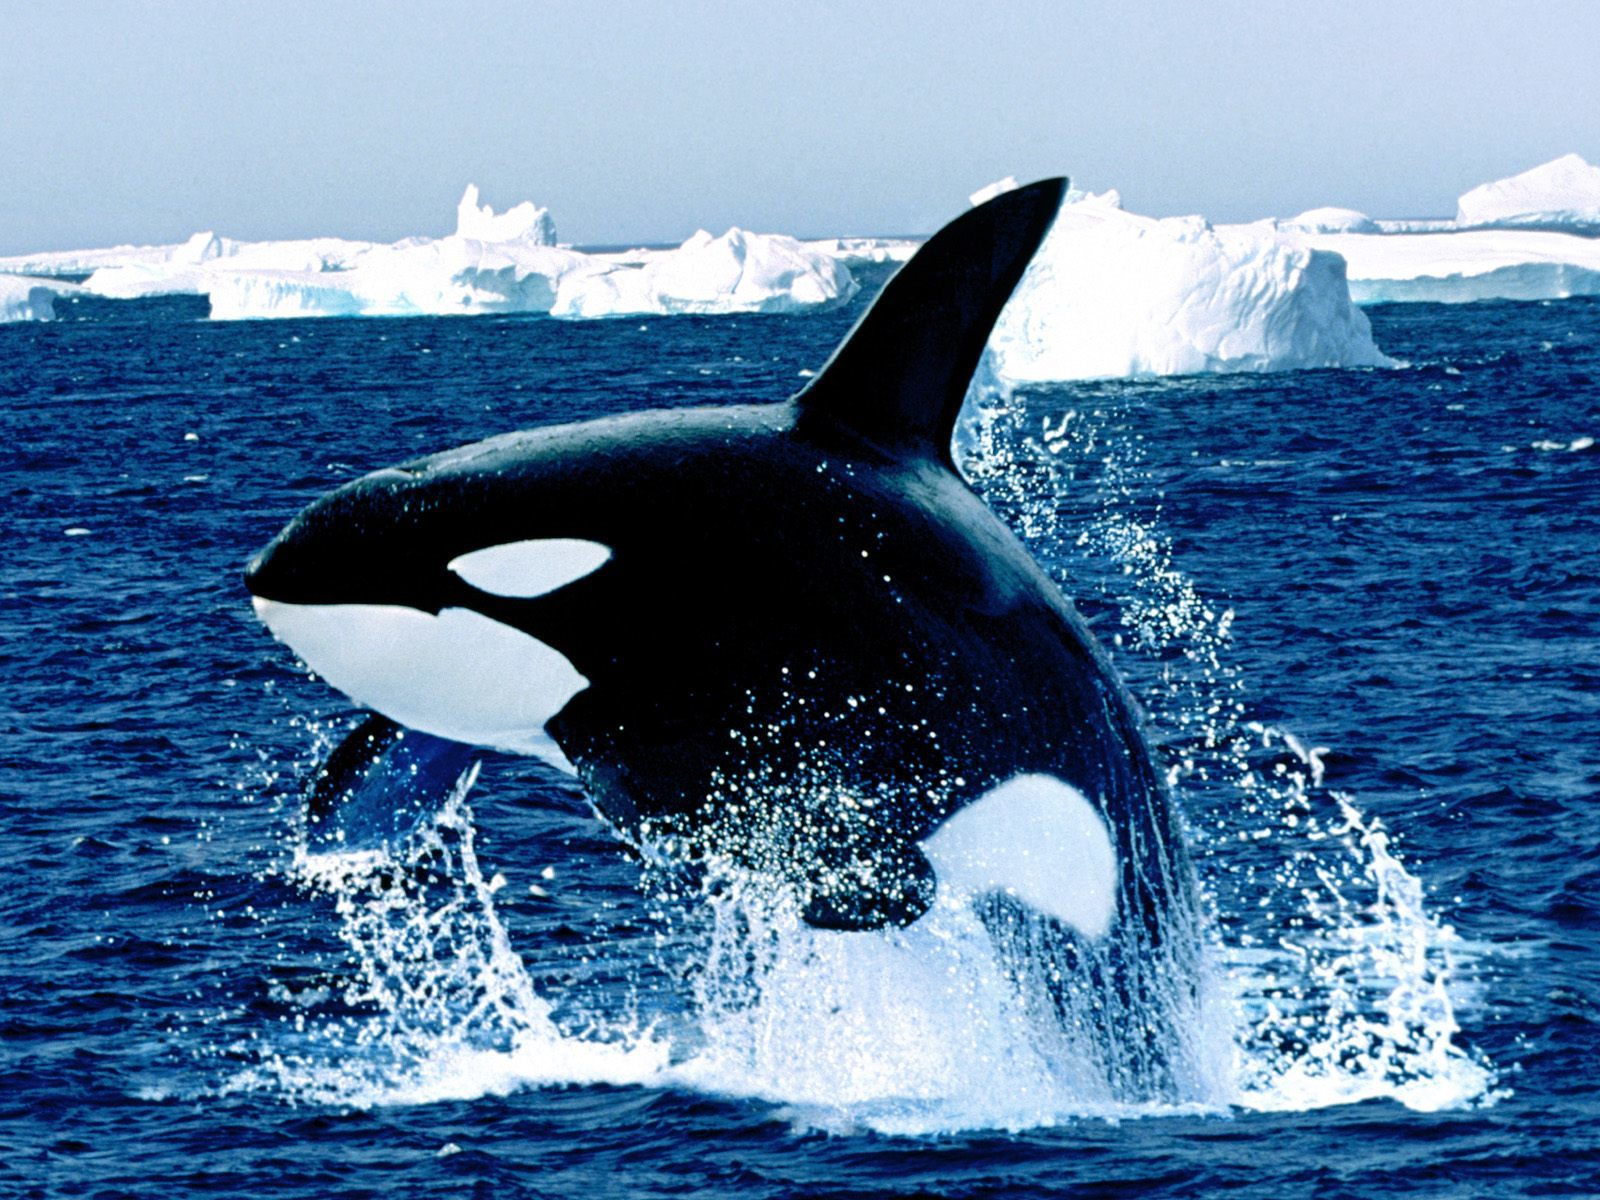 whale Wild nature arctica HD Wallpaper